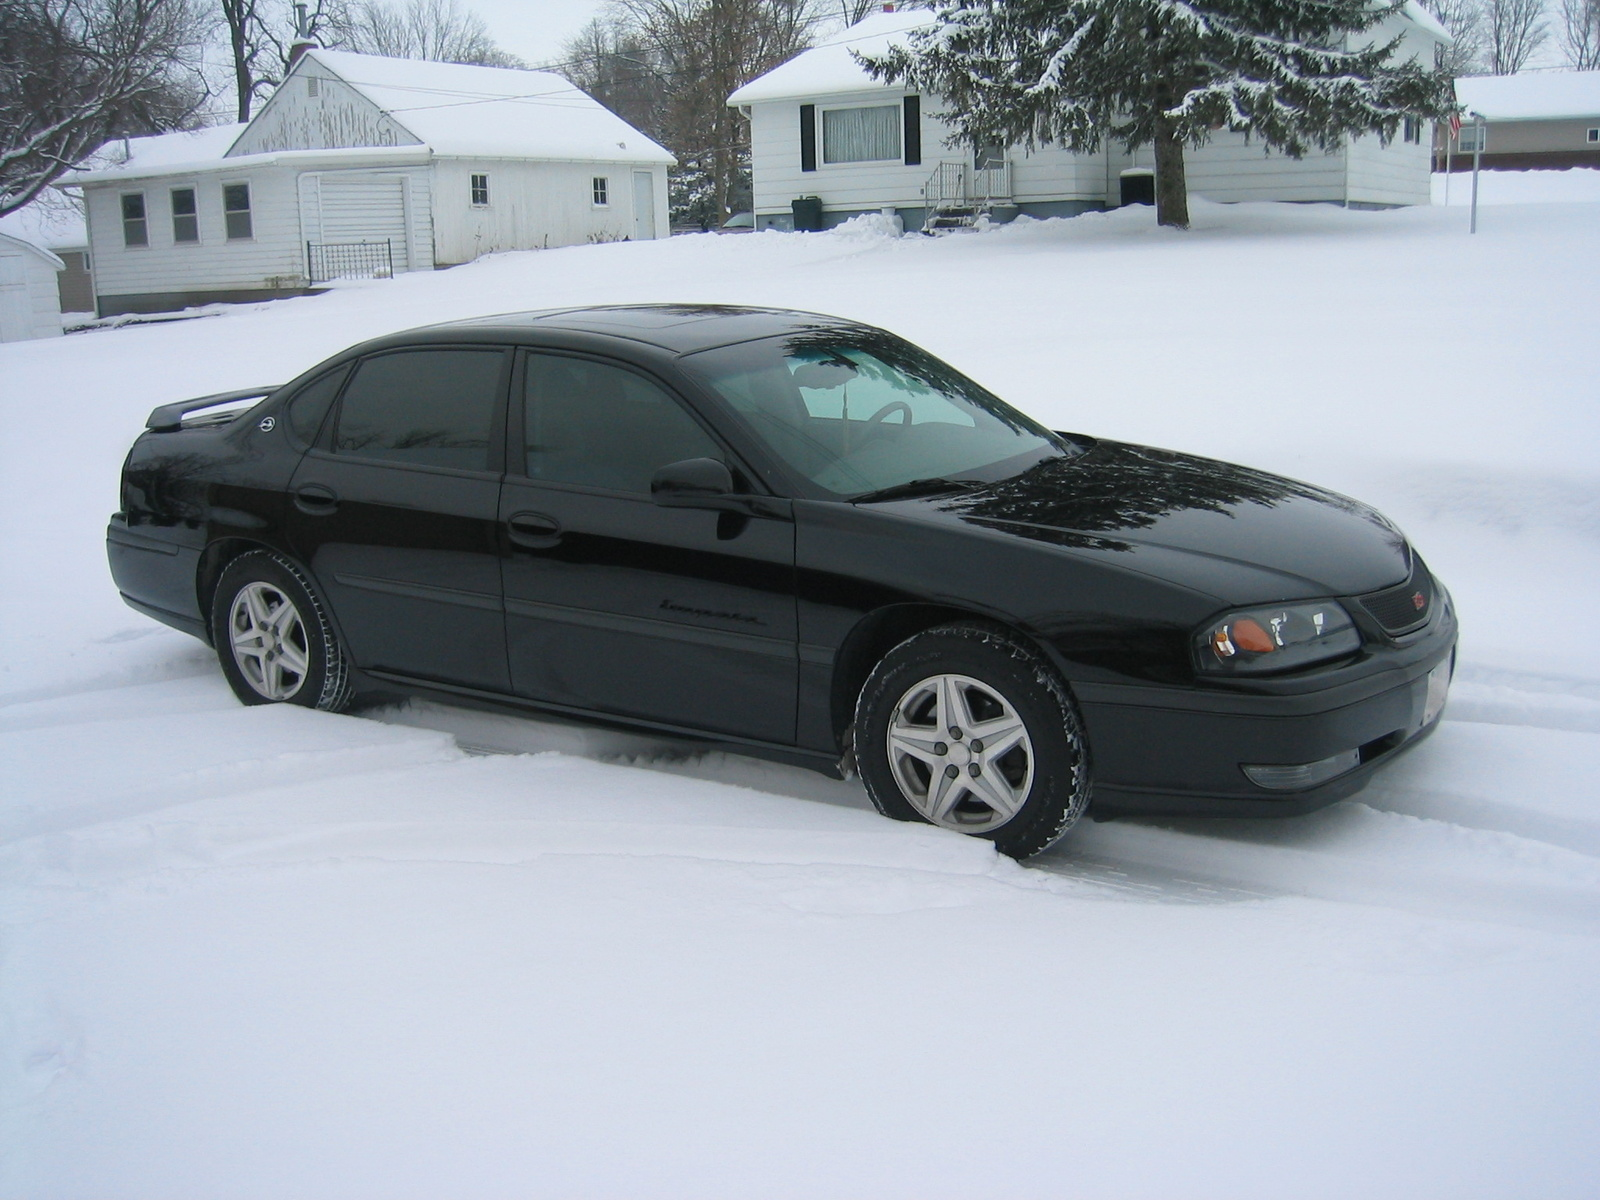 2008 Chevy Malibu Used Picture of 2003 Chevrolet Impala LS, exterior